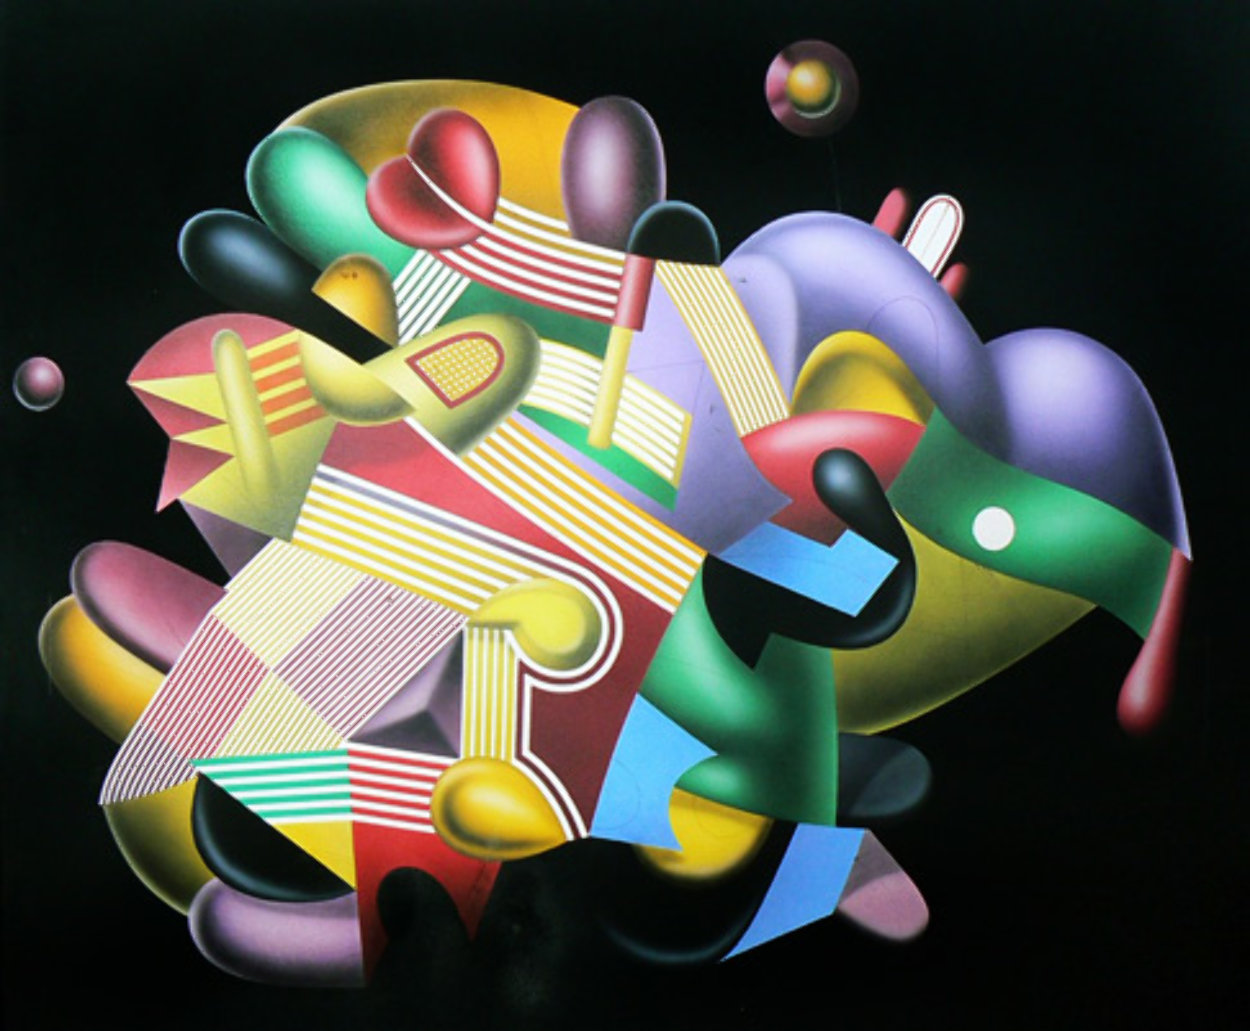 Candy Store 38x46 Huge Original Painting by Yankel Ginzburg